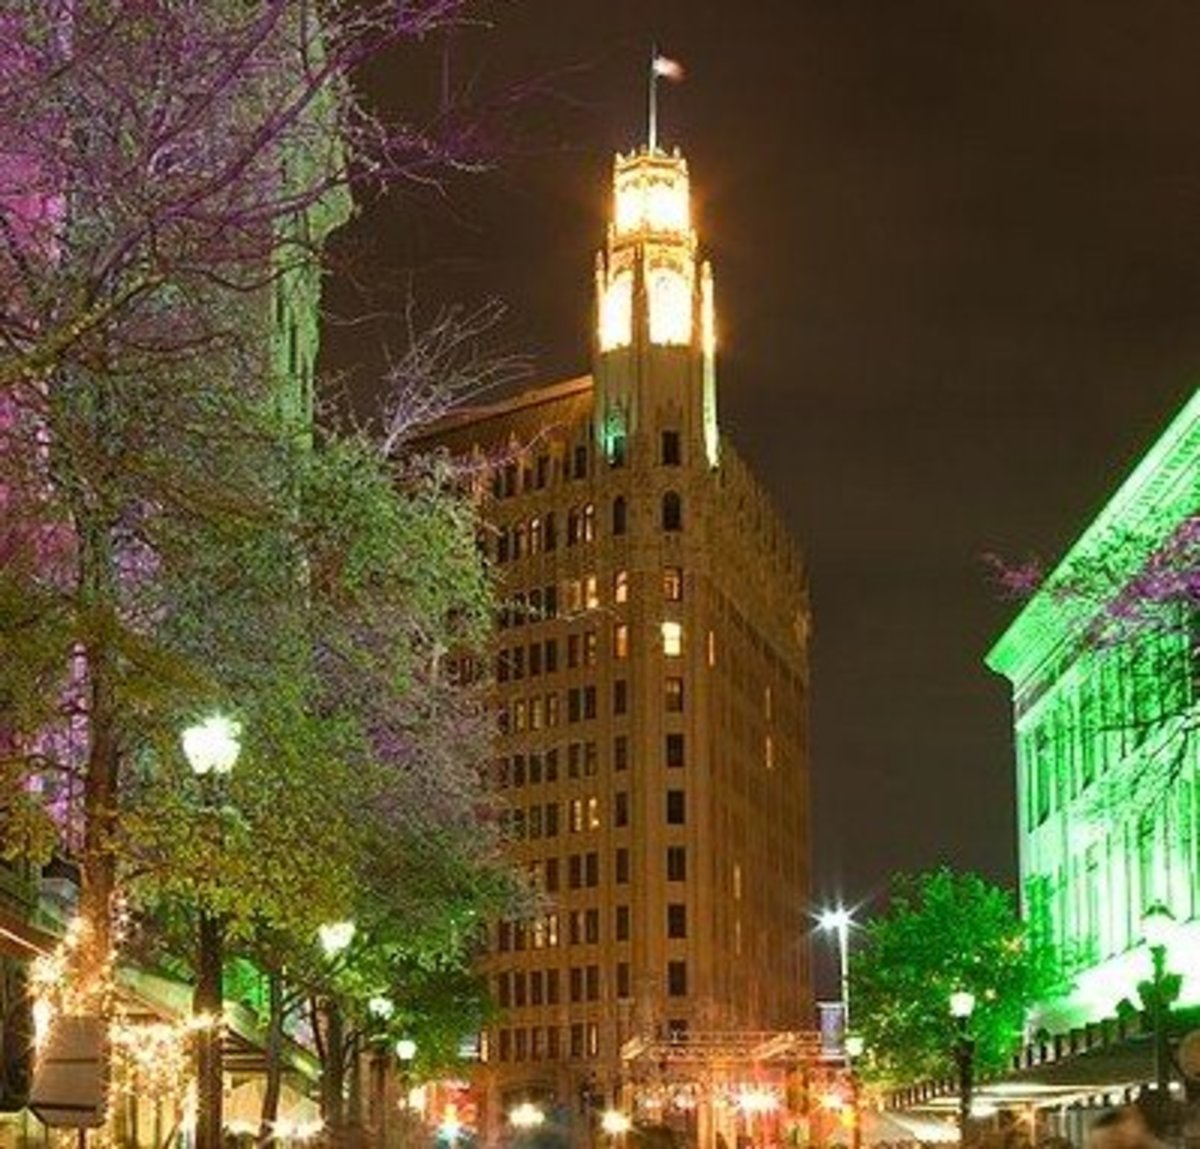 The Emily Morgan Hotel and Other Real Haunted Hotels in San Antonio